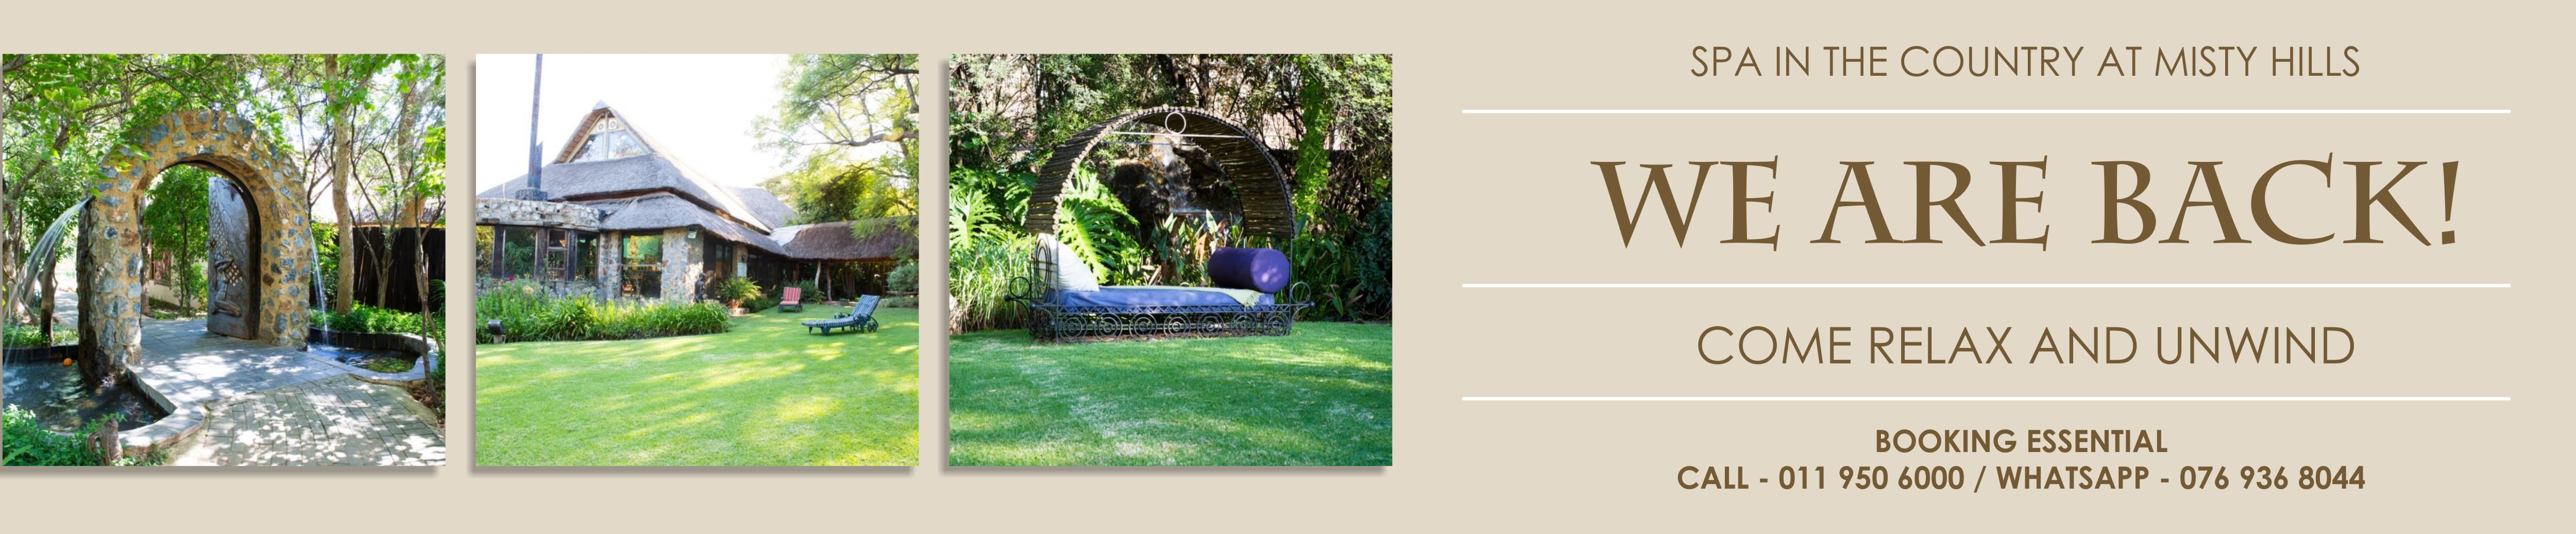 Spa in the Country Spa Treatment Packages Muldersdrifts